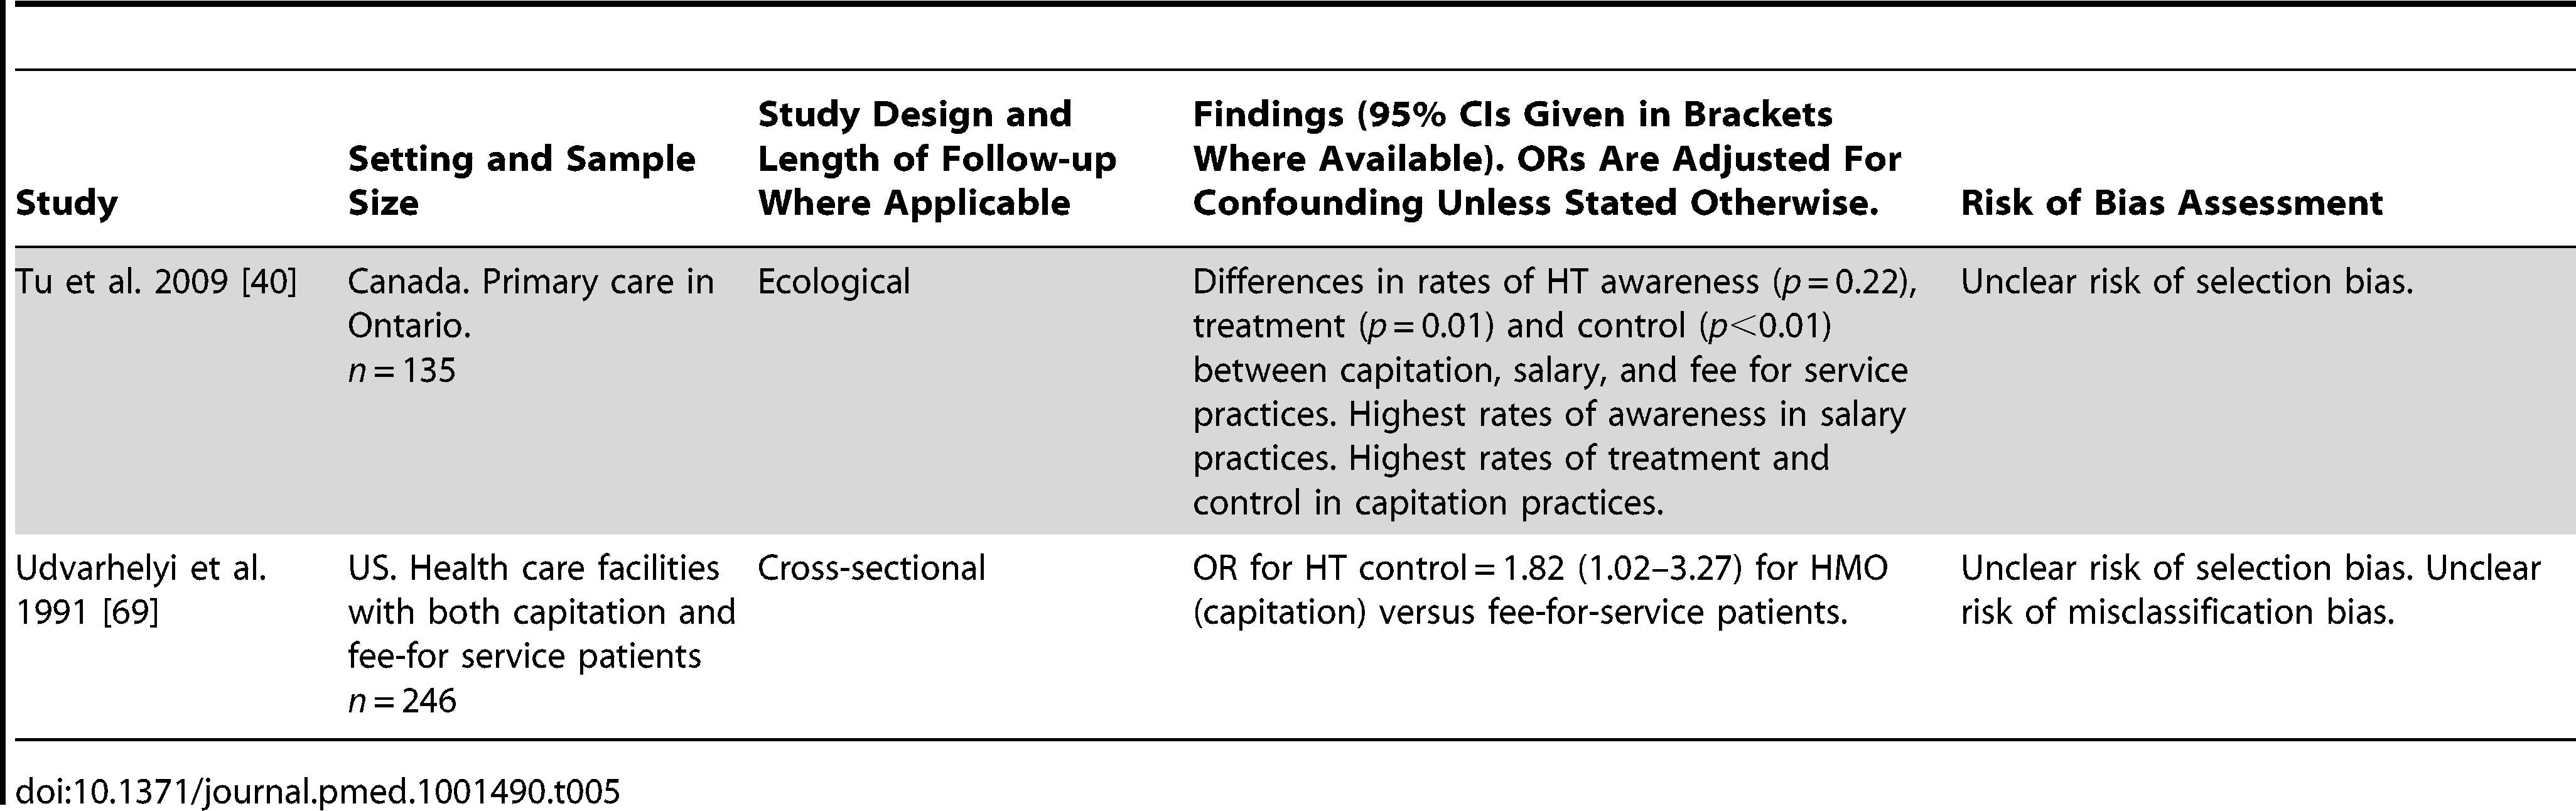 Findings of quantitative studies examining the association of physician remuneration models with hypertension outcomes.